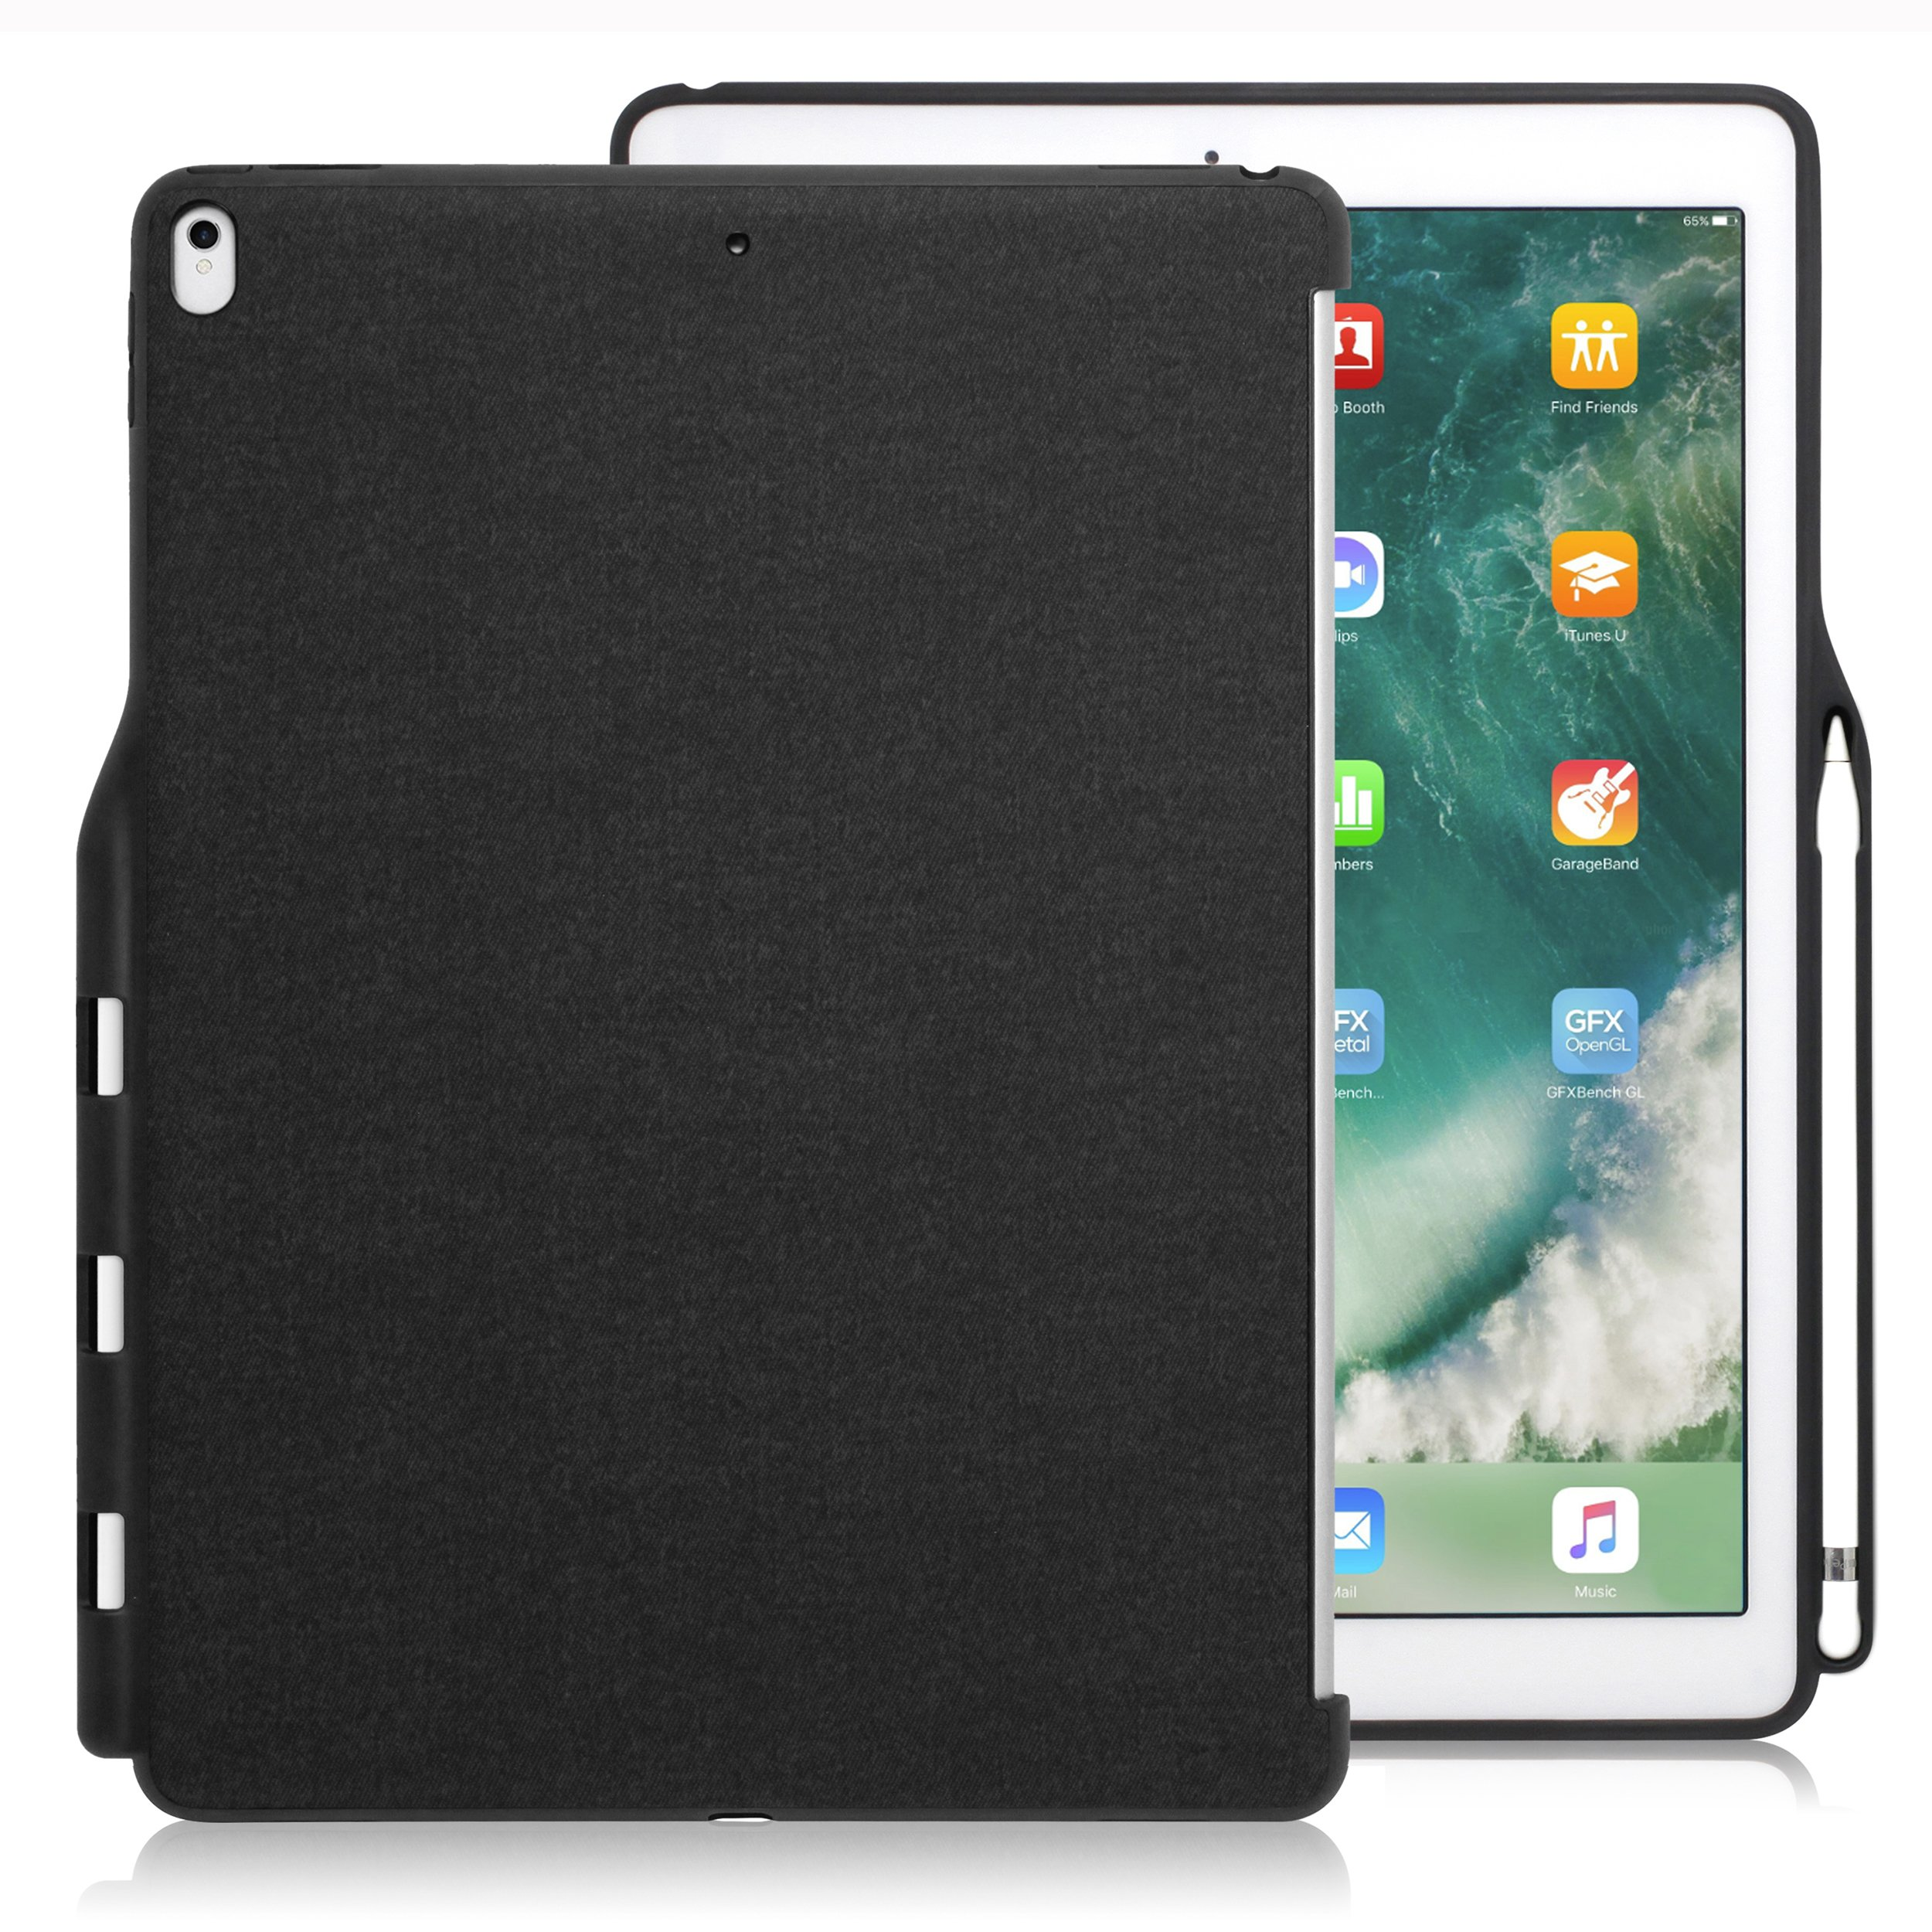 LUVVITT iPad Pro 12.9 Case (Compatible with 2015 and 2017 Version) Back Cover with Pencil Holder Compatible with Smart Keyboard and Apple Smart Cover - Heather Black by Luvvitt